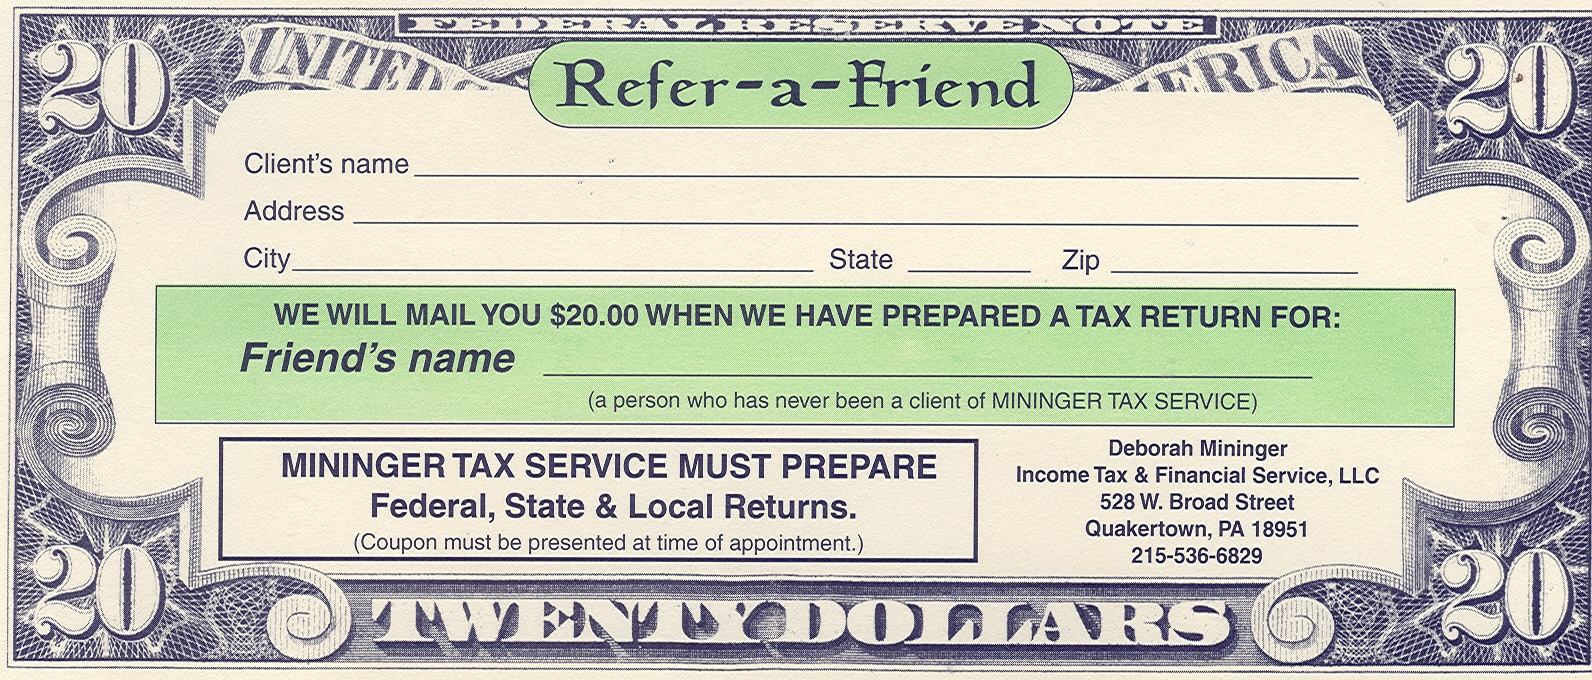 Refer A Friend Deborah Mininger Income Tax Amp Financial